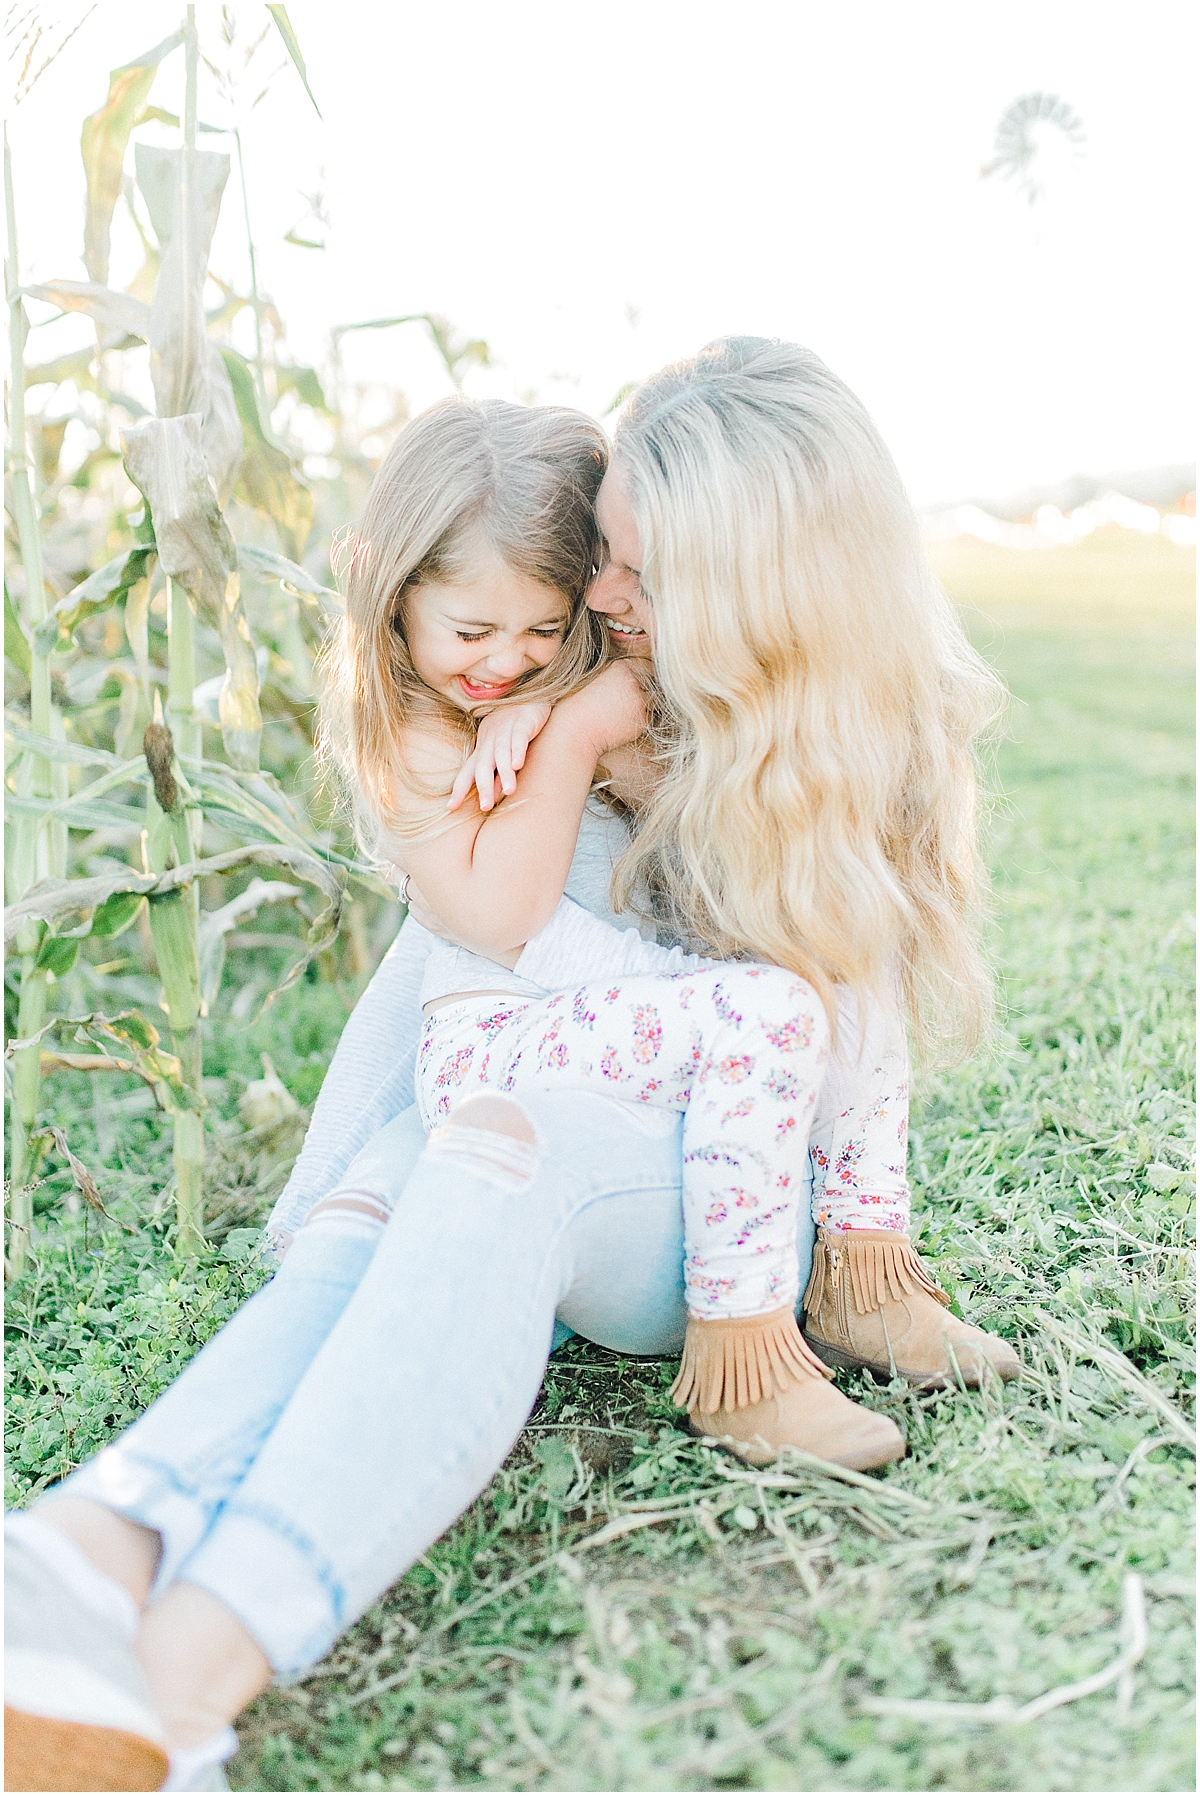 Pumpkin Patch Photo Shoot With Toddler and Mommy | Emma Rose Company Seattle Portland Light and Airy Wedding Photographer | Kindred Presets | Film_0017.jpg